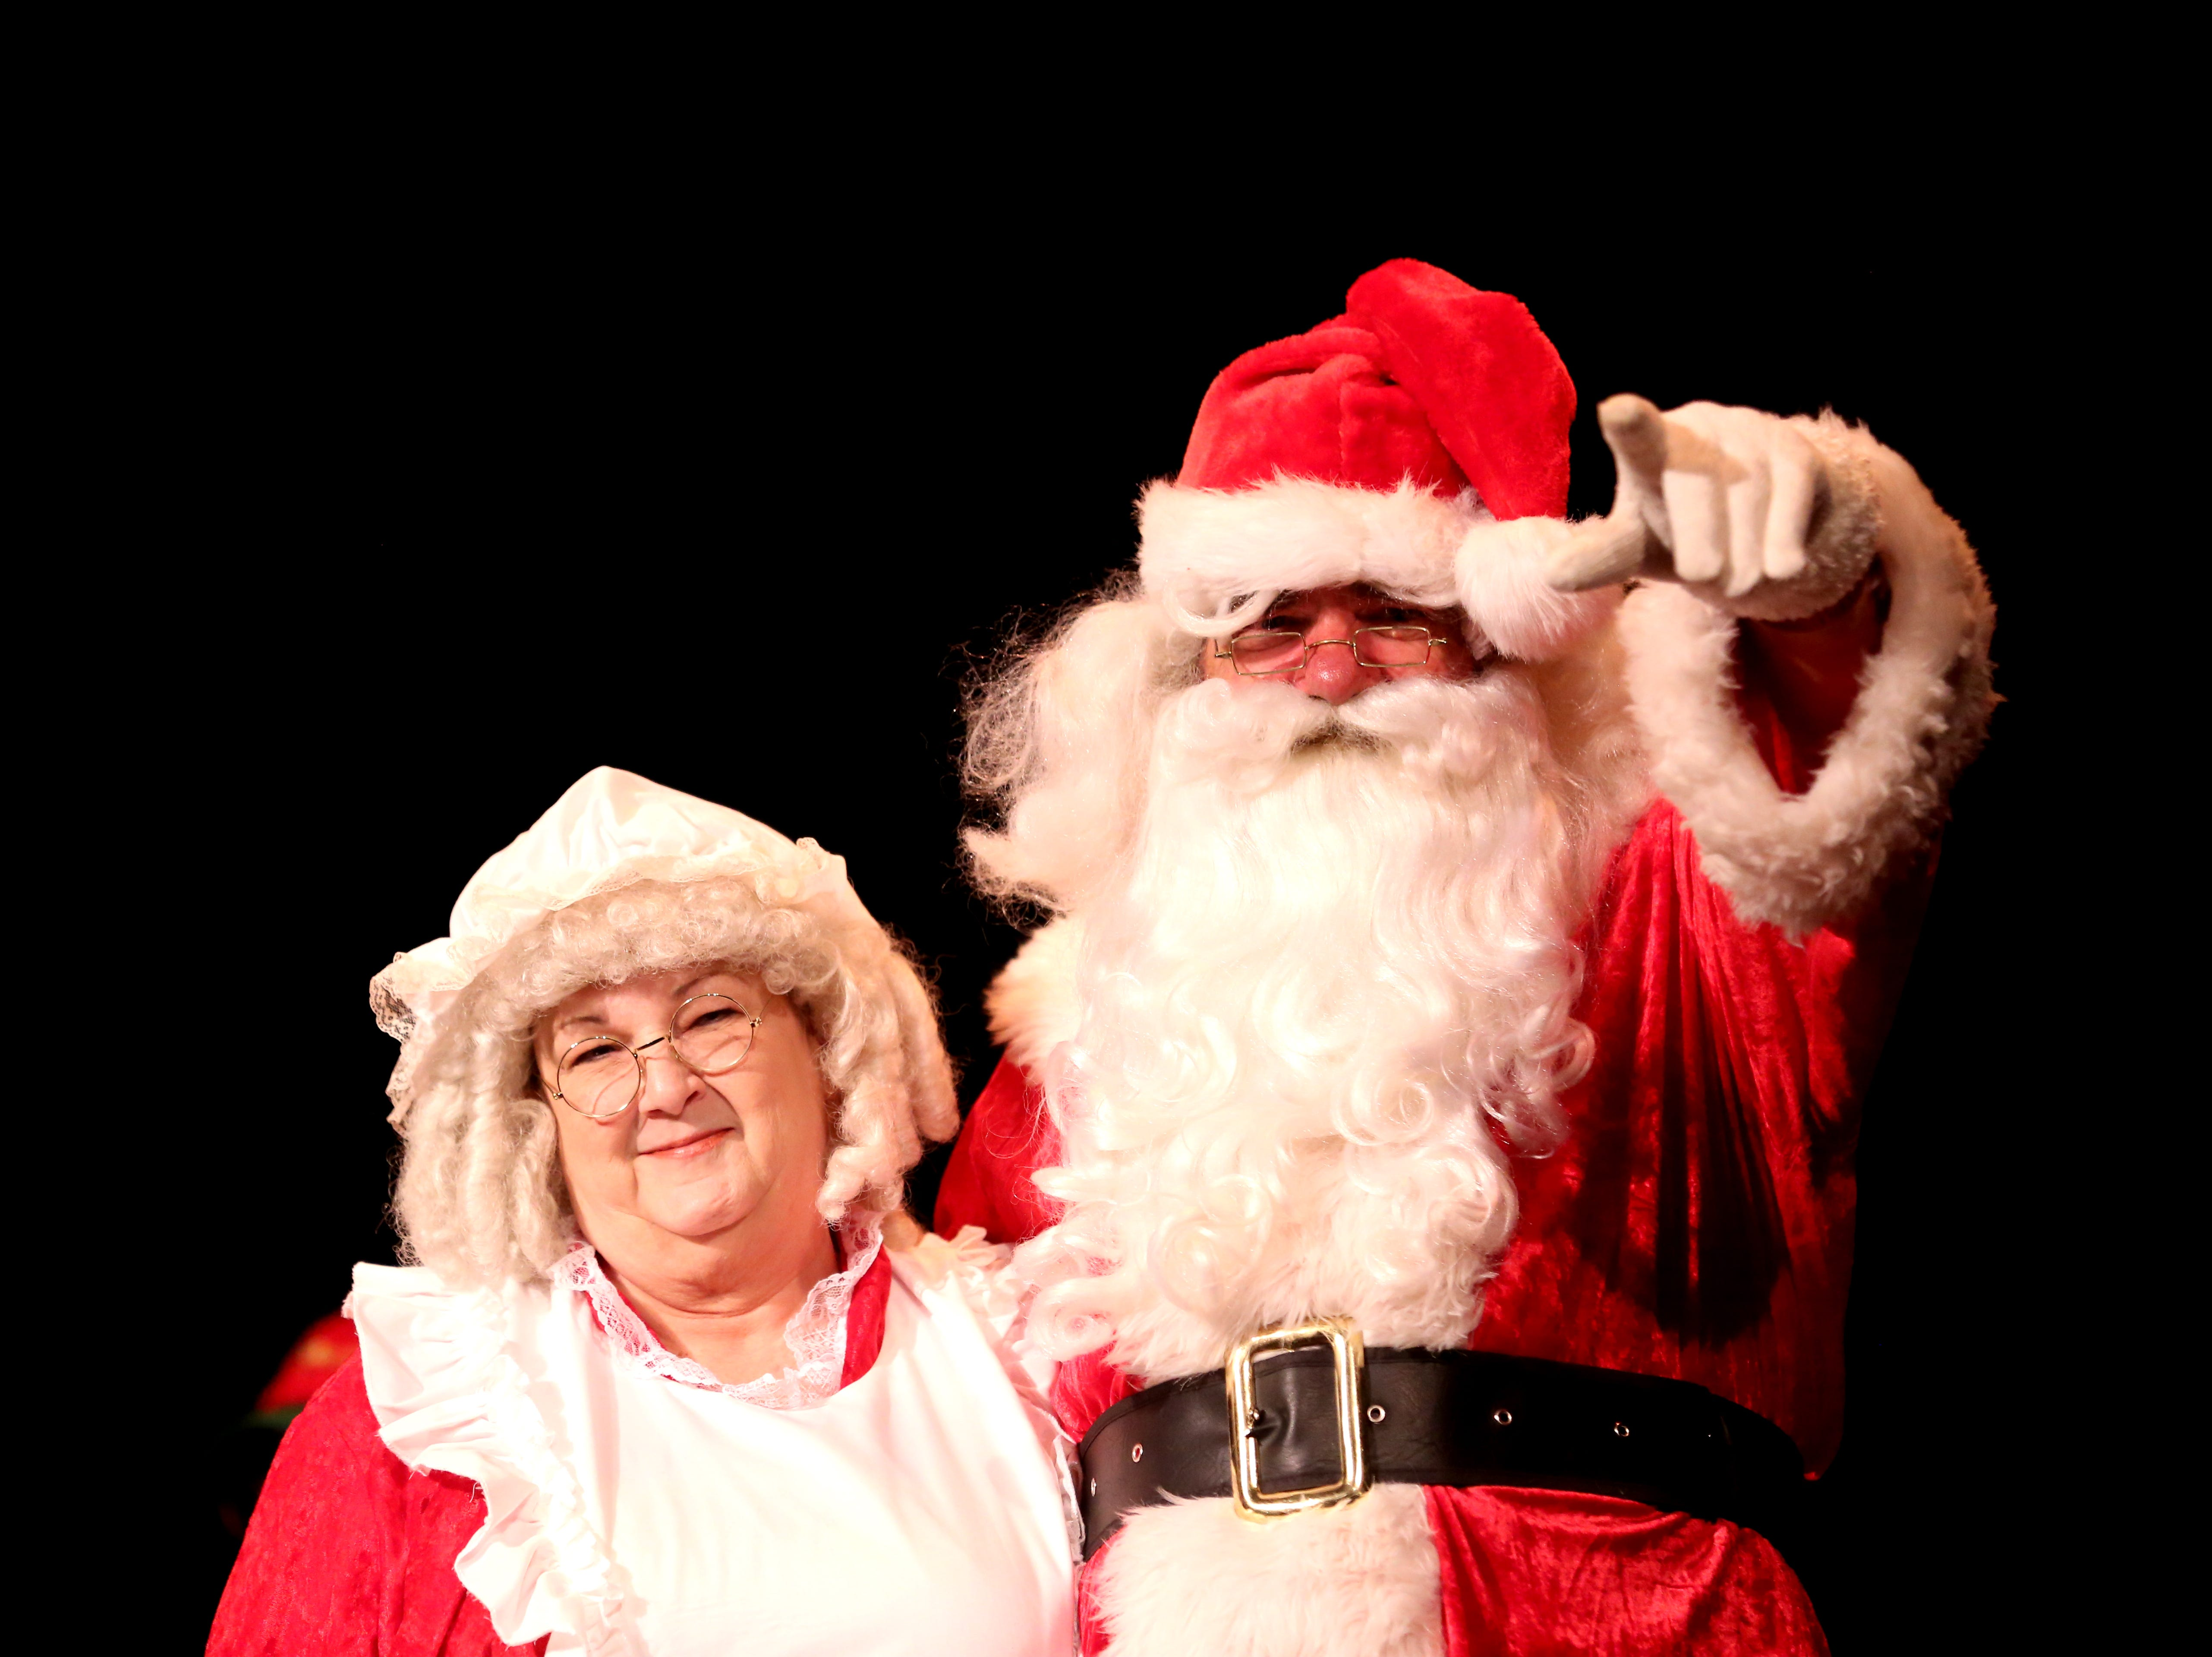 Santa Claus and Mrs. Claus greet children at the 78th annual children's holiday party at the Elsinore Theatre on Saturday, Dec. 1, 2018. The party included holiday music and a visit from Santa.